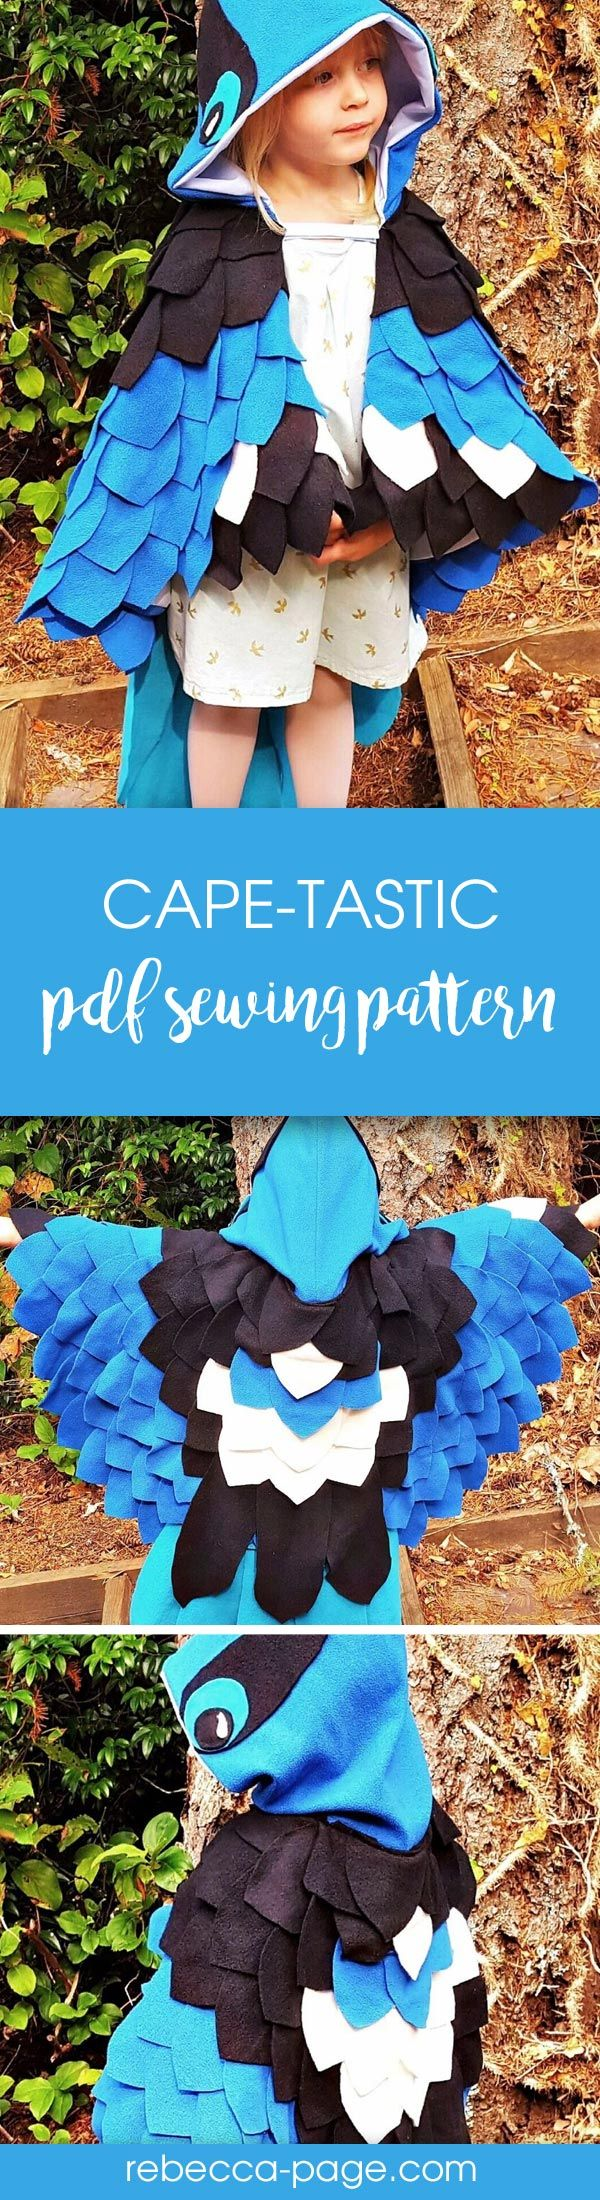 PDF sewing pattern for kids and adults - cape dress up costume.